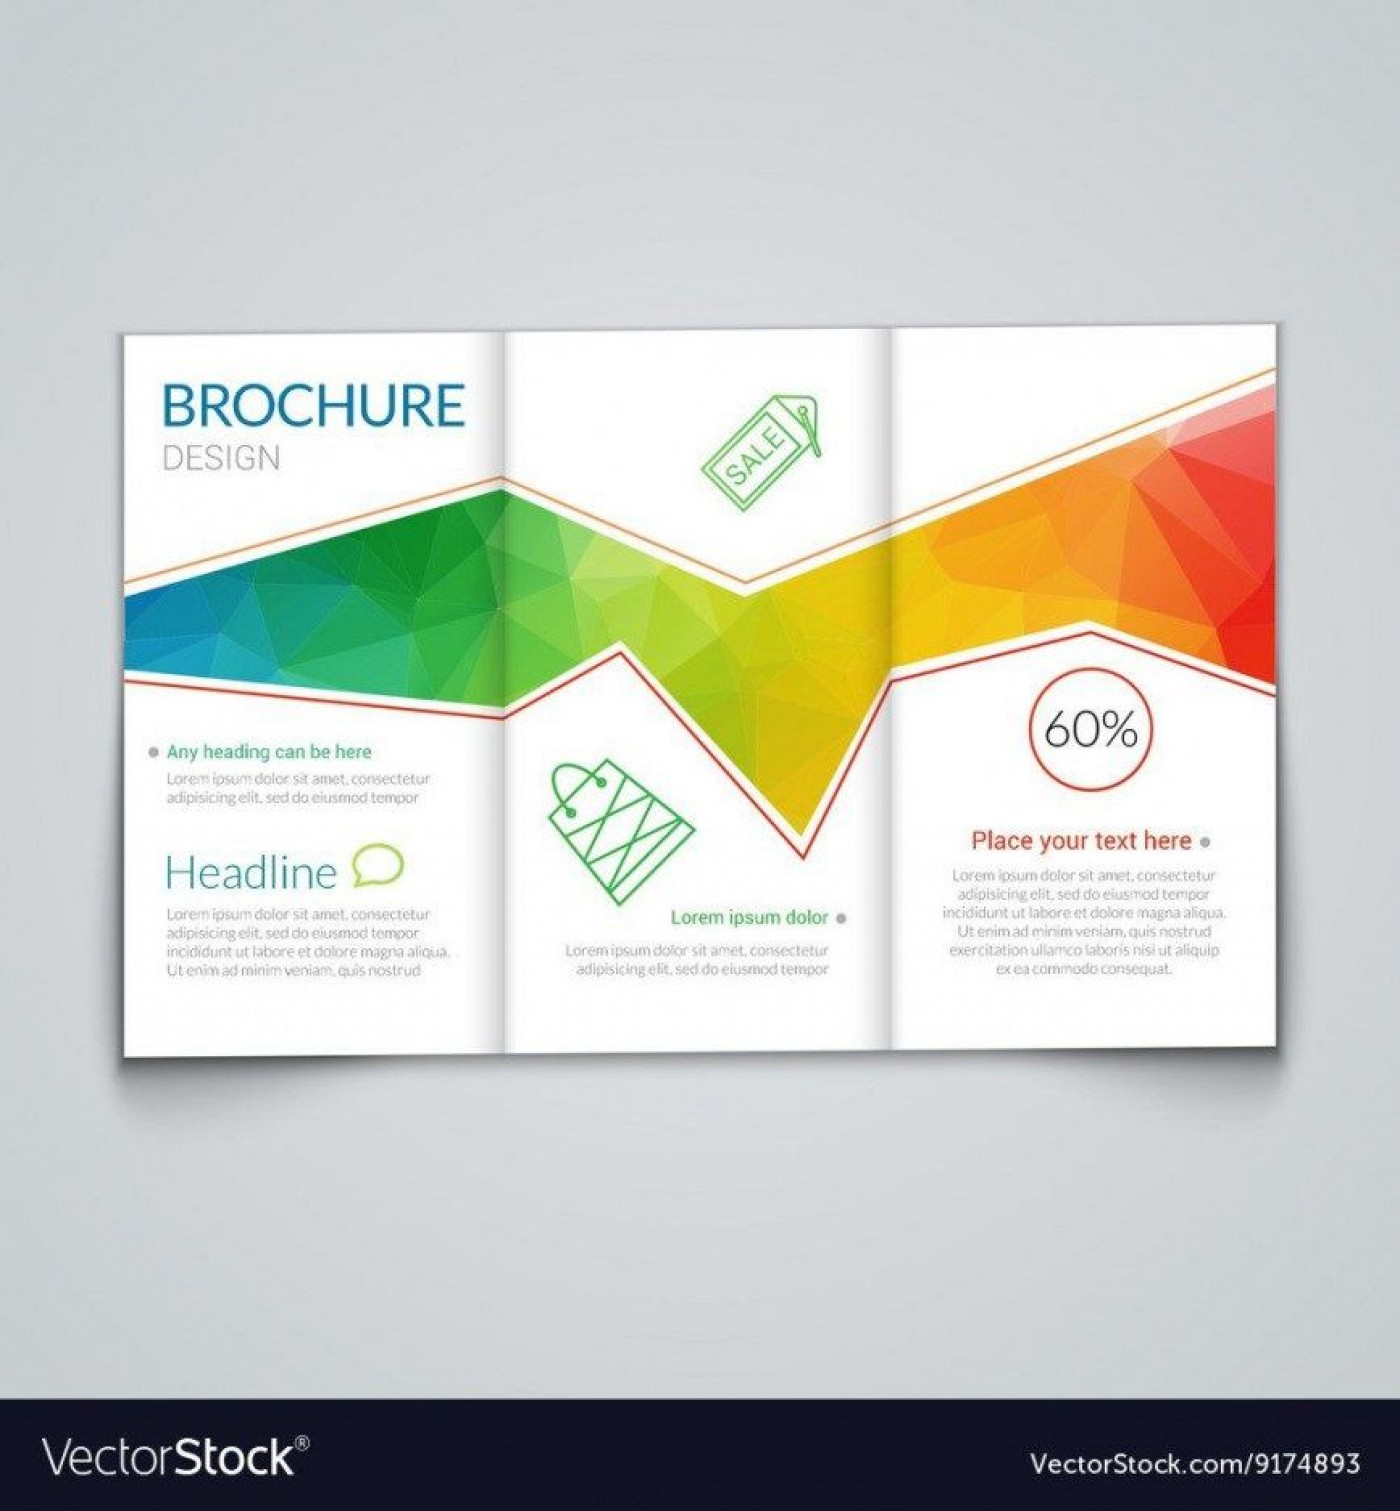 002 Marvelou Download Brochure Template For Microsoft Word 2007 High Resolution  Free1400